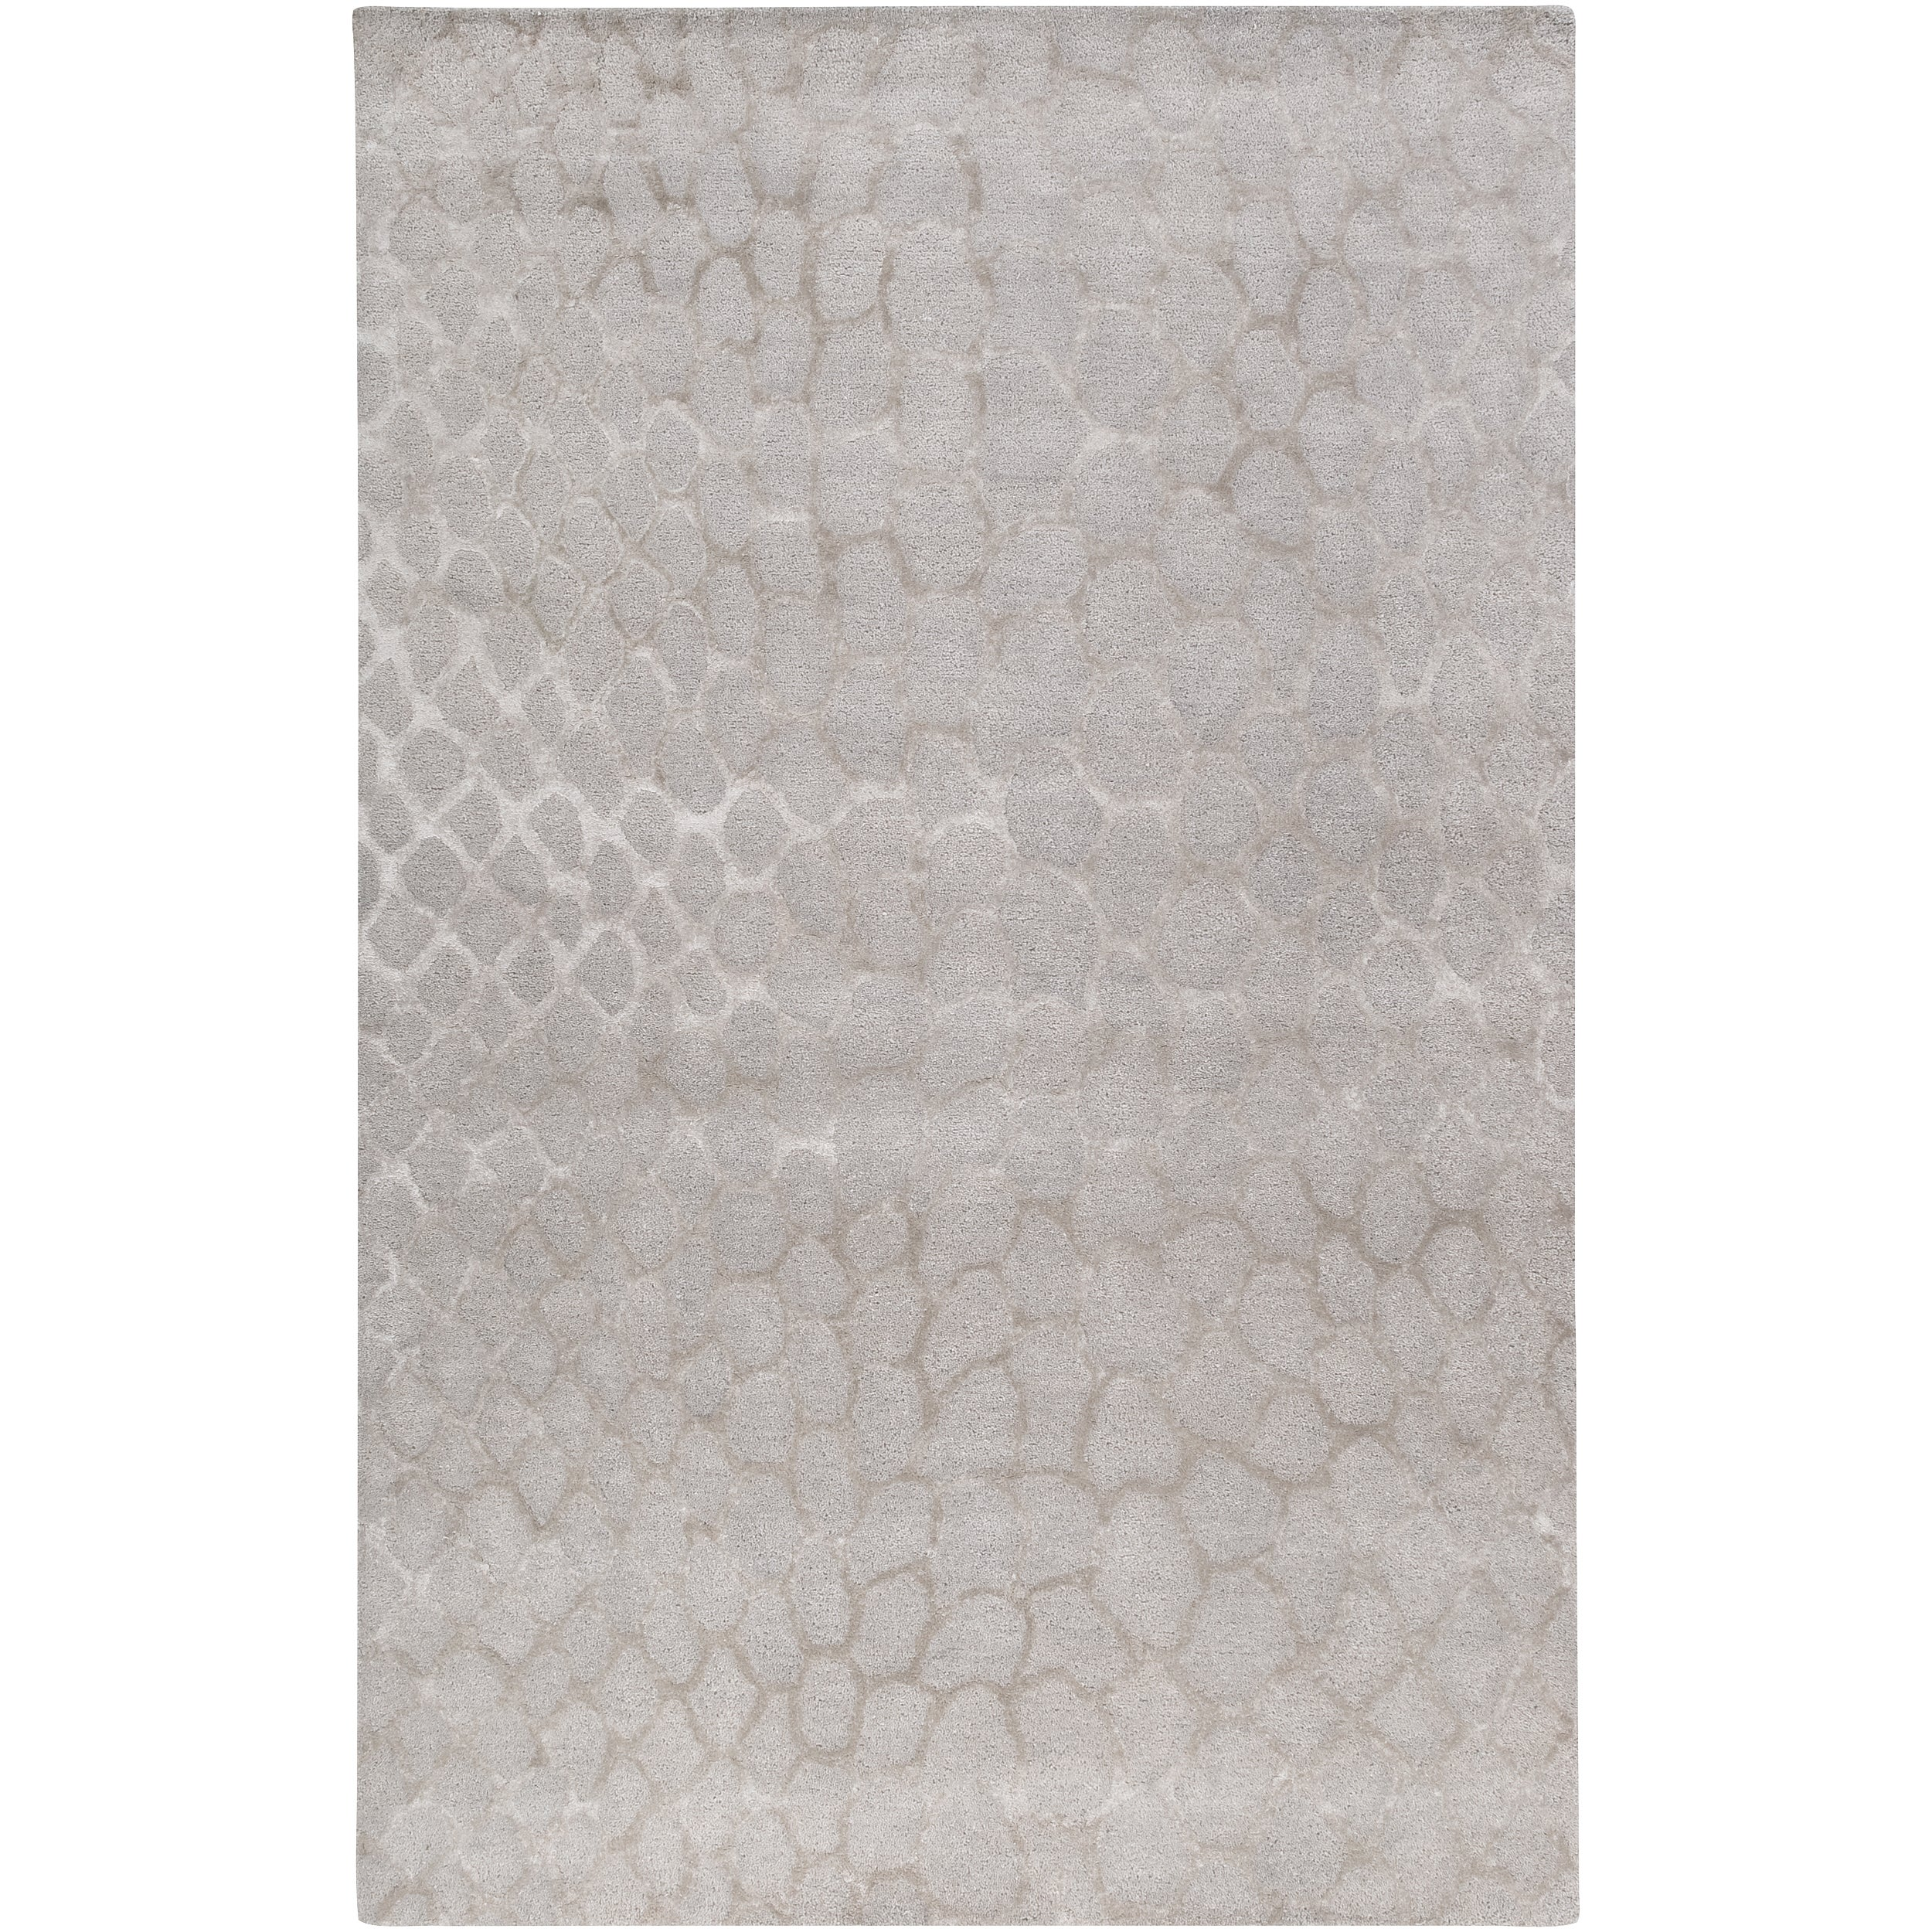 Bob Mackie Hand-tufted Contemporary Grey Gephy New Zealand Wool Abstract Rug (8' x 11')